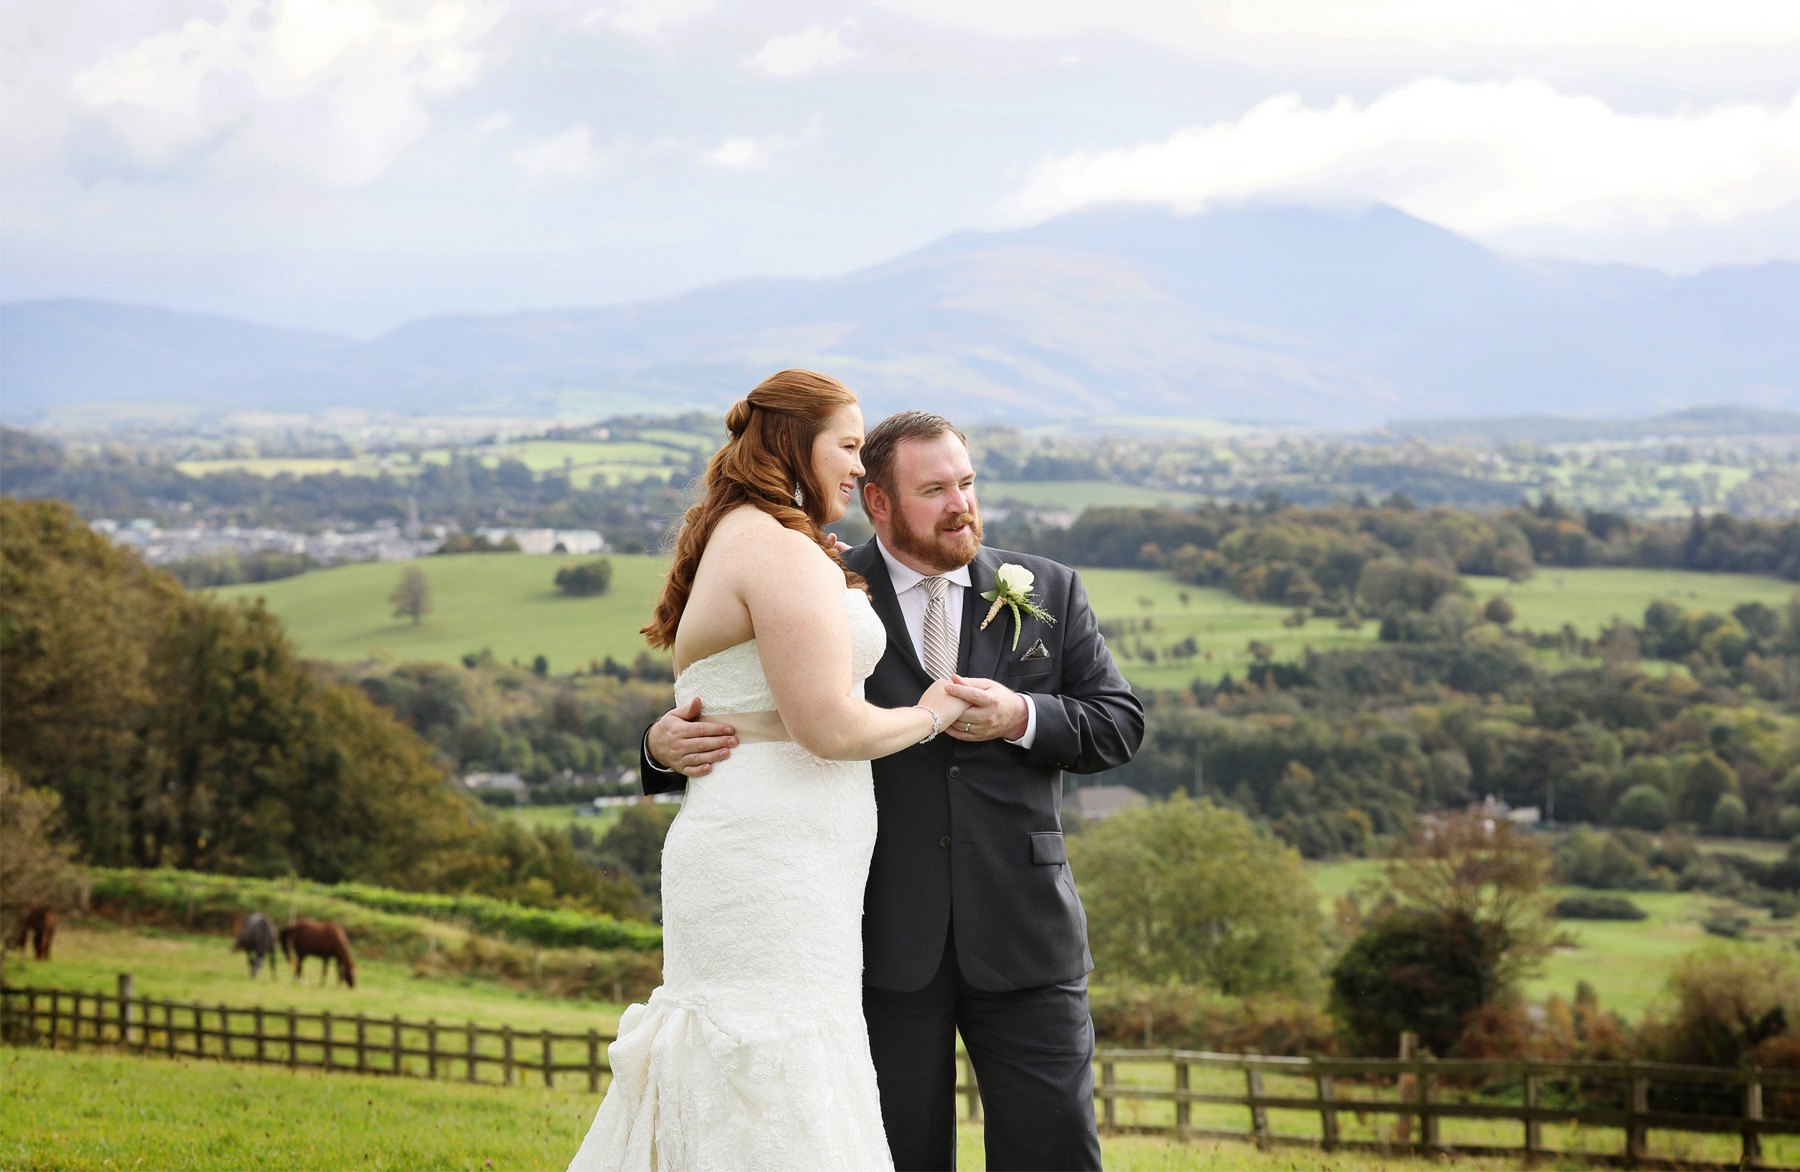 23-Kilarney-Ireland-Wedding-Photographer-by-Andrew-Vick-Photography-Fall-Autumn-Destination-First-Meeting-Look-Bride-Groom-Embrace-Landscape-Village-Field-Becca-and-Donal.jpg